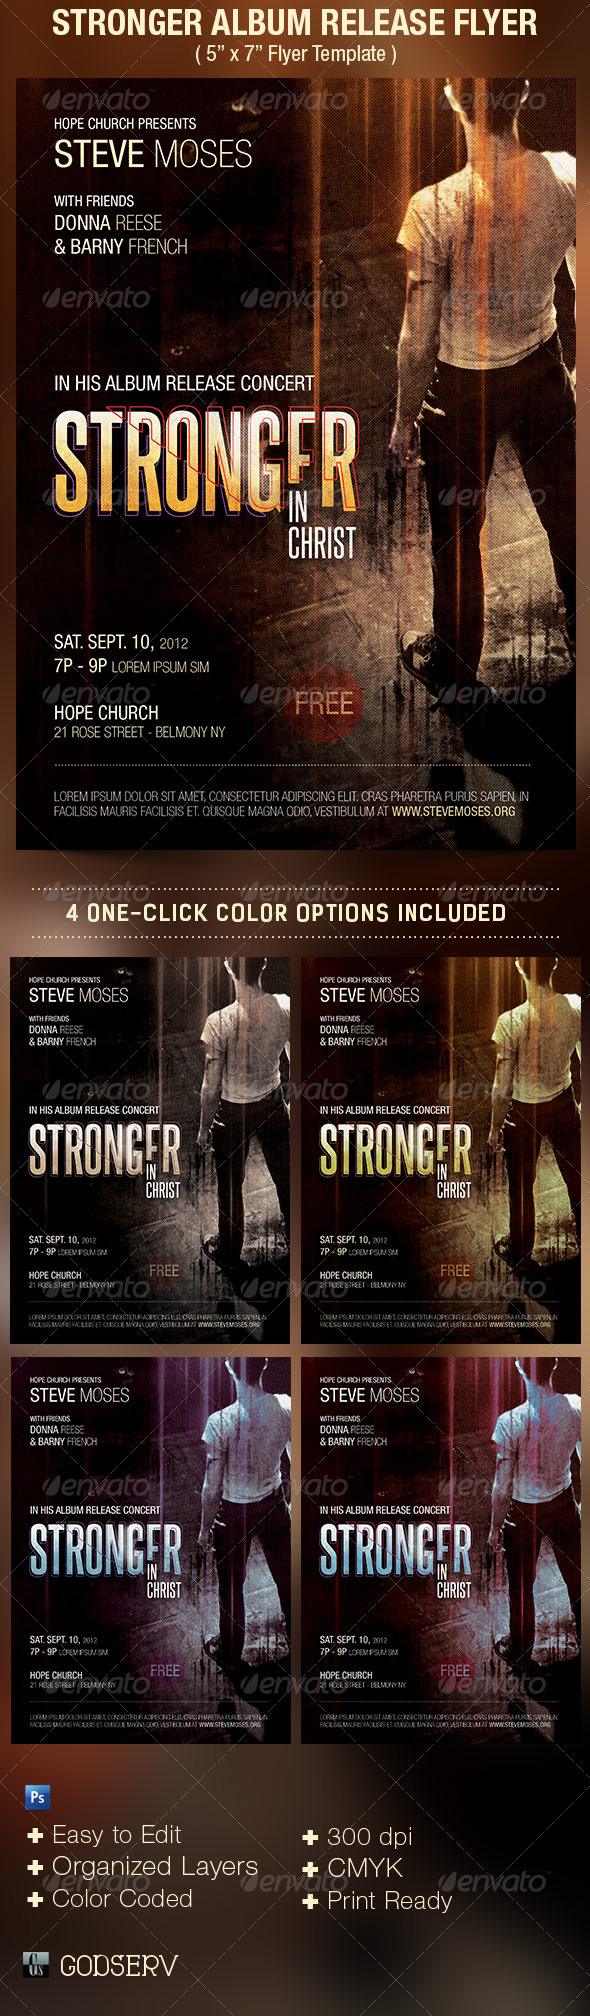 Stronger Album Release Flyer Template - Church Flyers